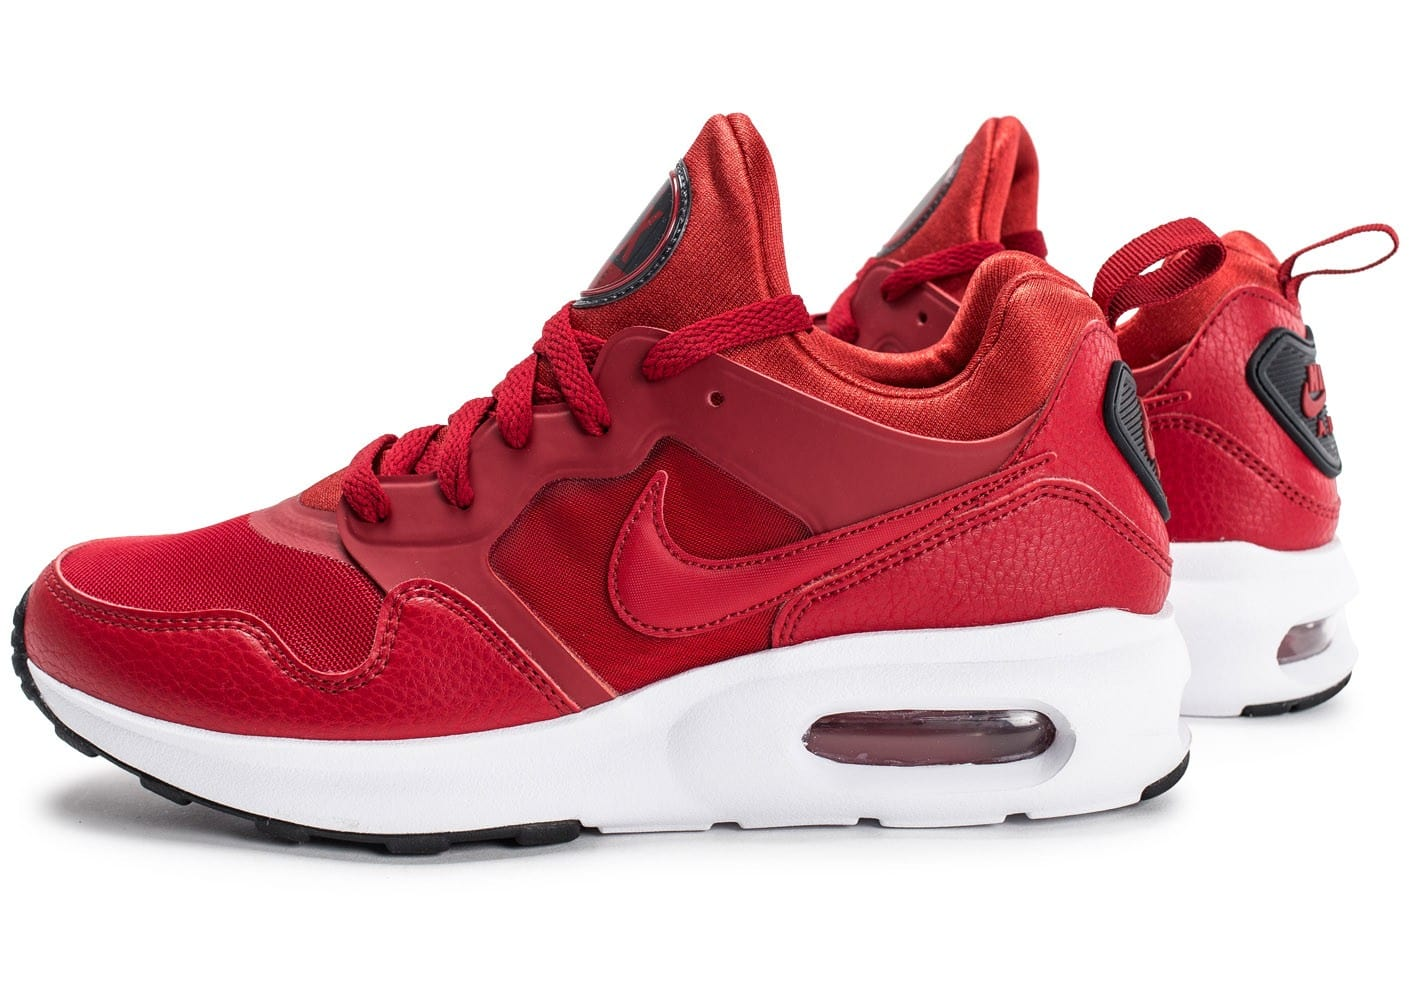 meilleure sélection d8bf6 be8ee Nike Air Max Prime rouge - Chaussures Baskets homme - Chausport